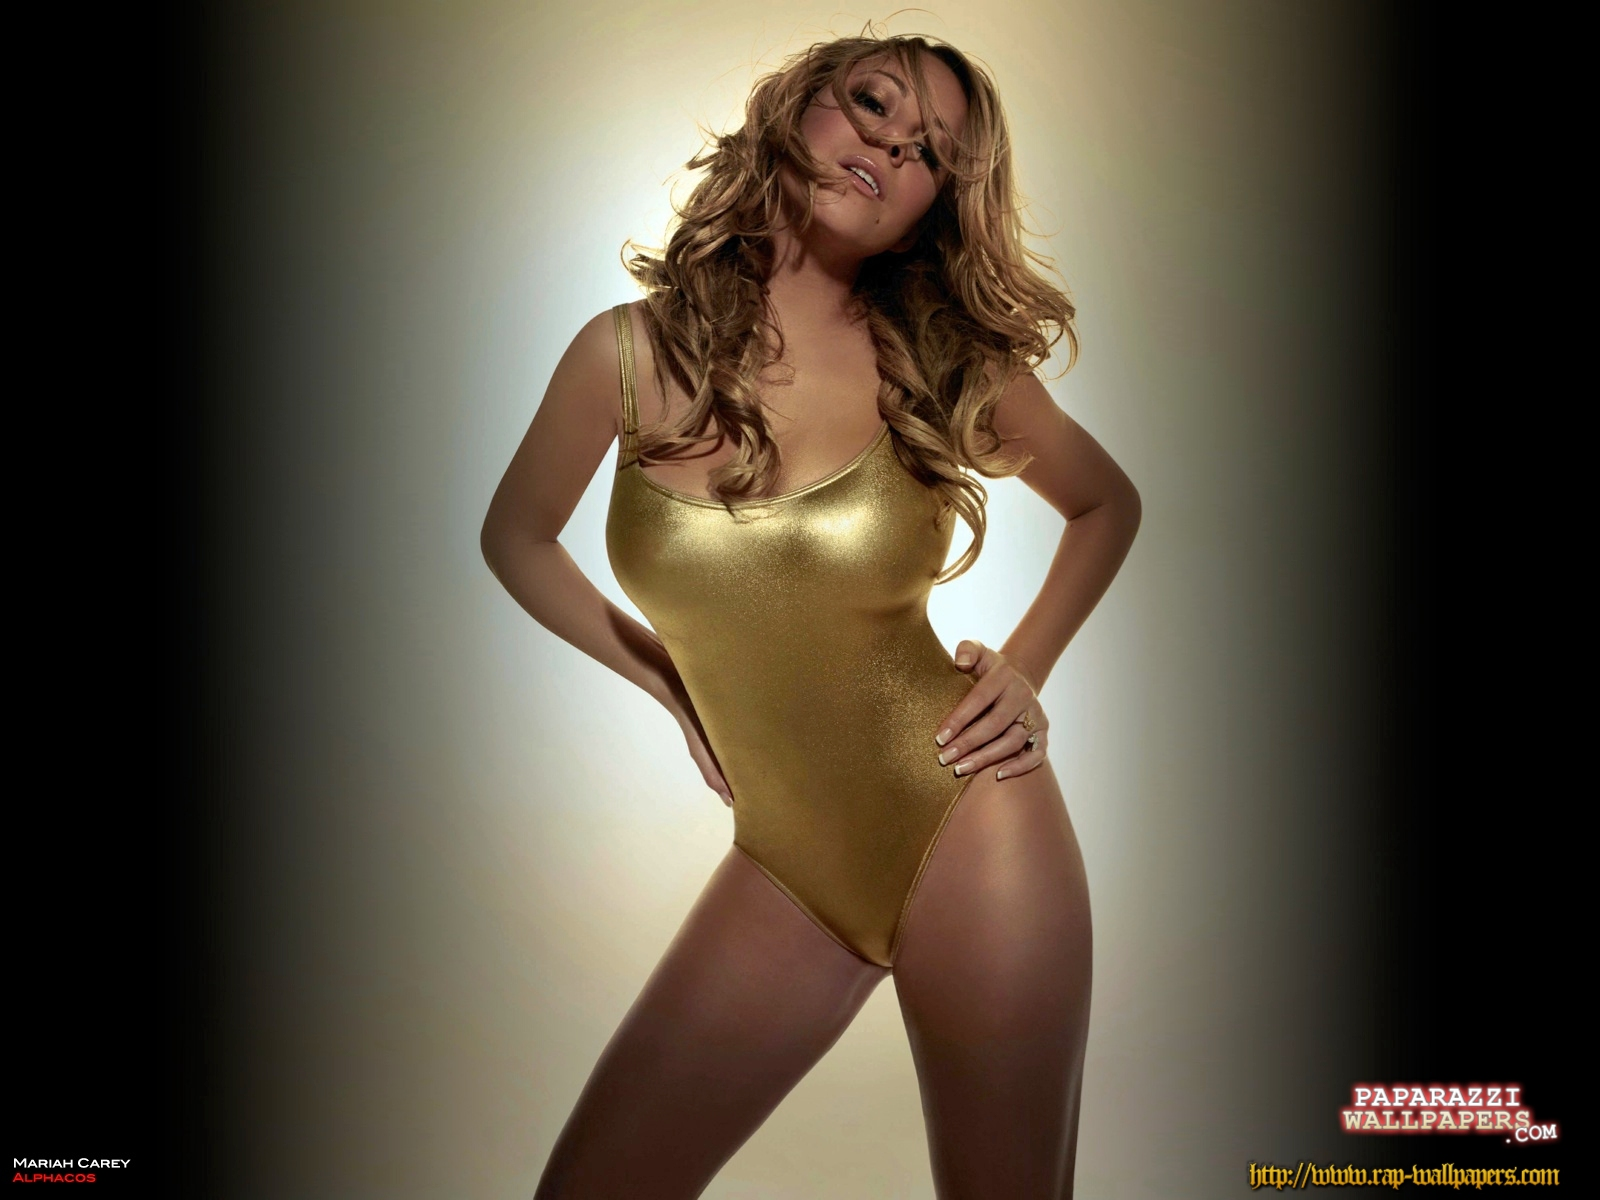 mariah carey wallpapers 044